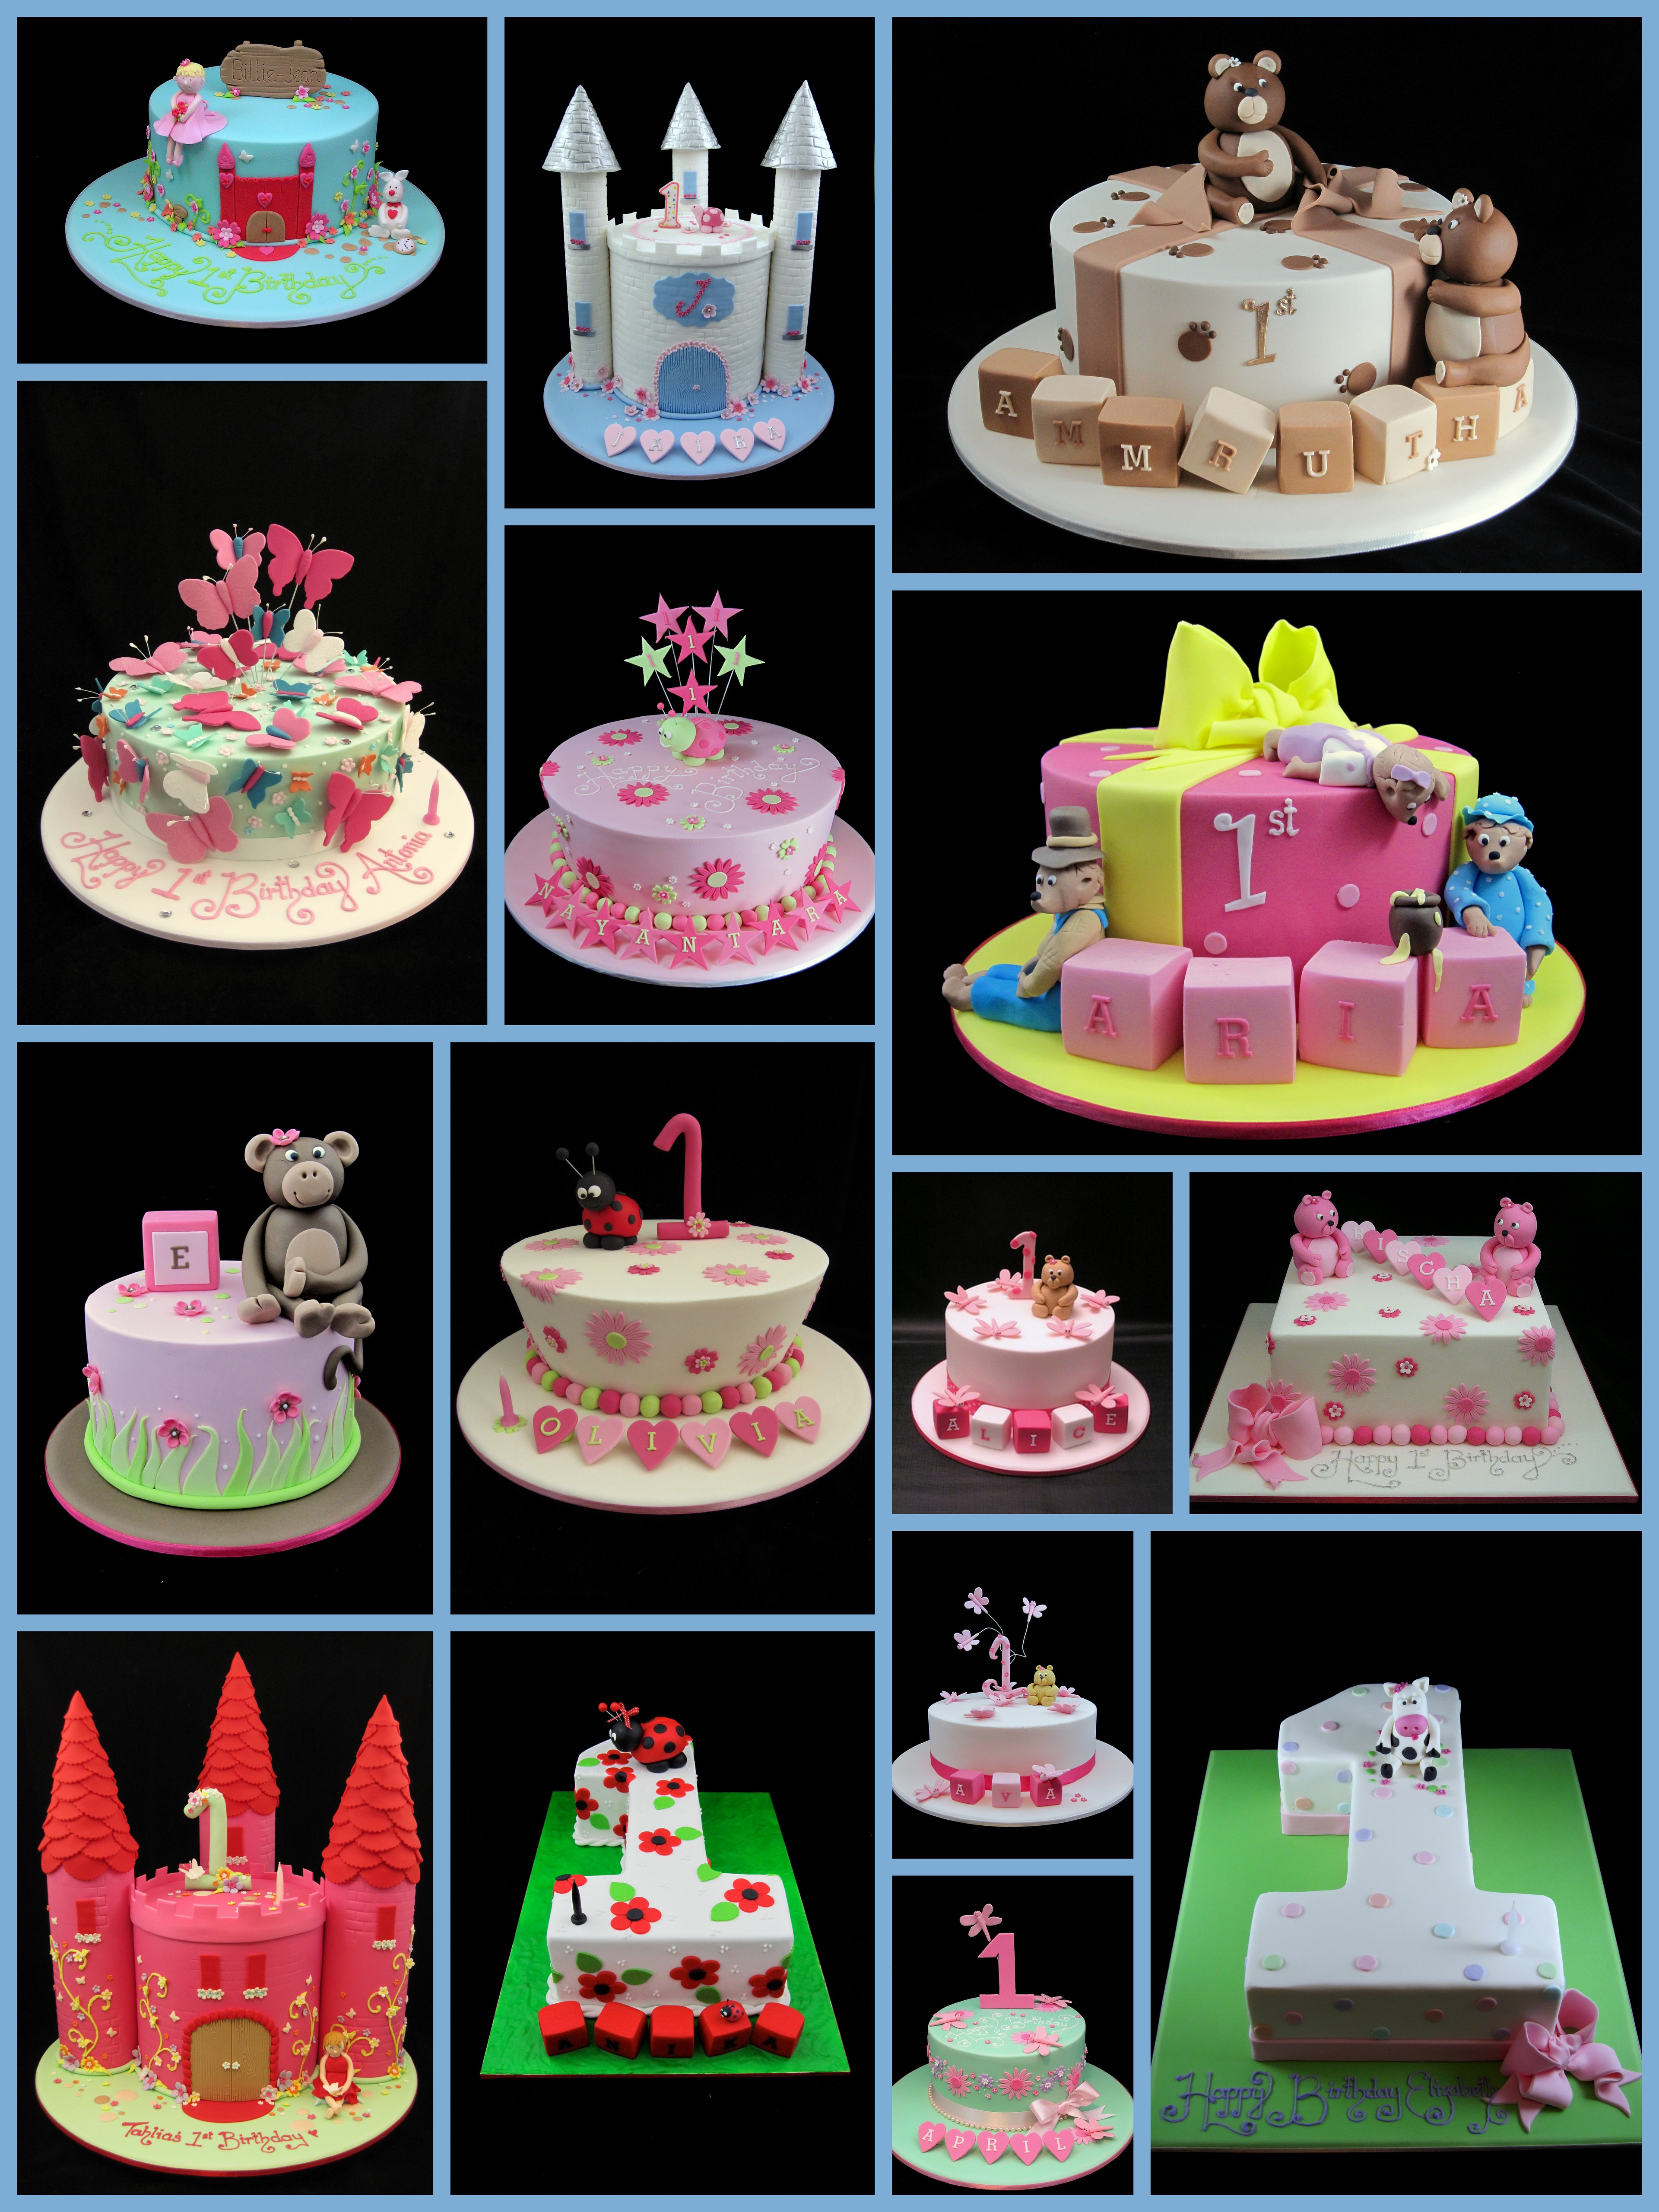 Best ideas about Birthday Cake Ideas For Girls . Save or Pin 21st birthday for girls Now.